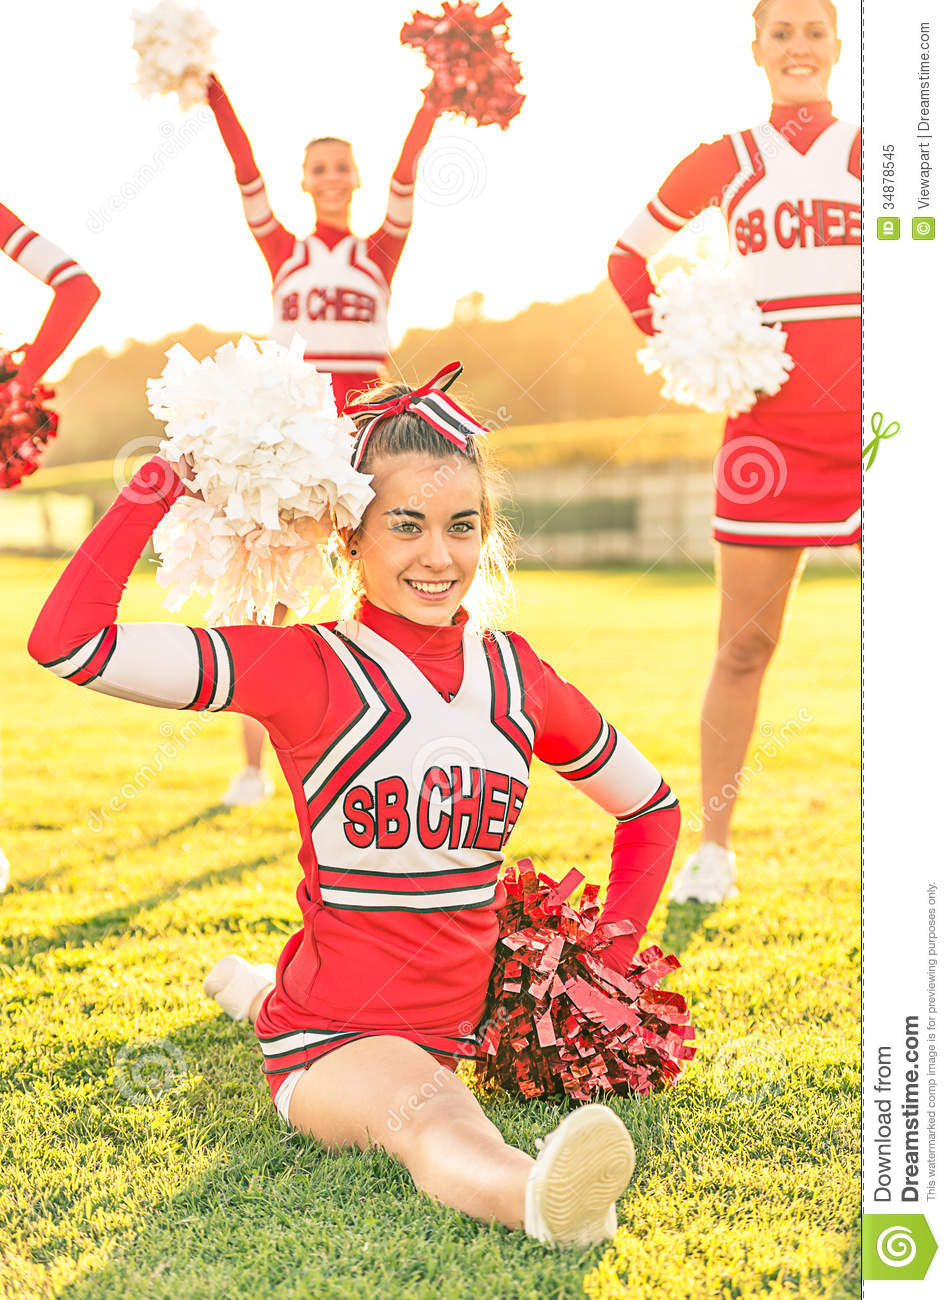 Portrait Of A Cheerleader In Action Royalty Free Stock Photo - Image ...